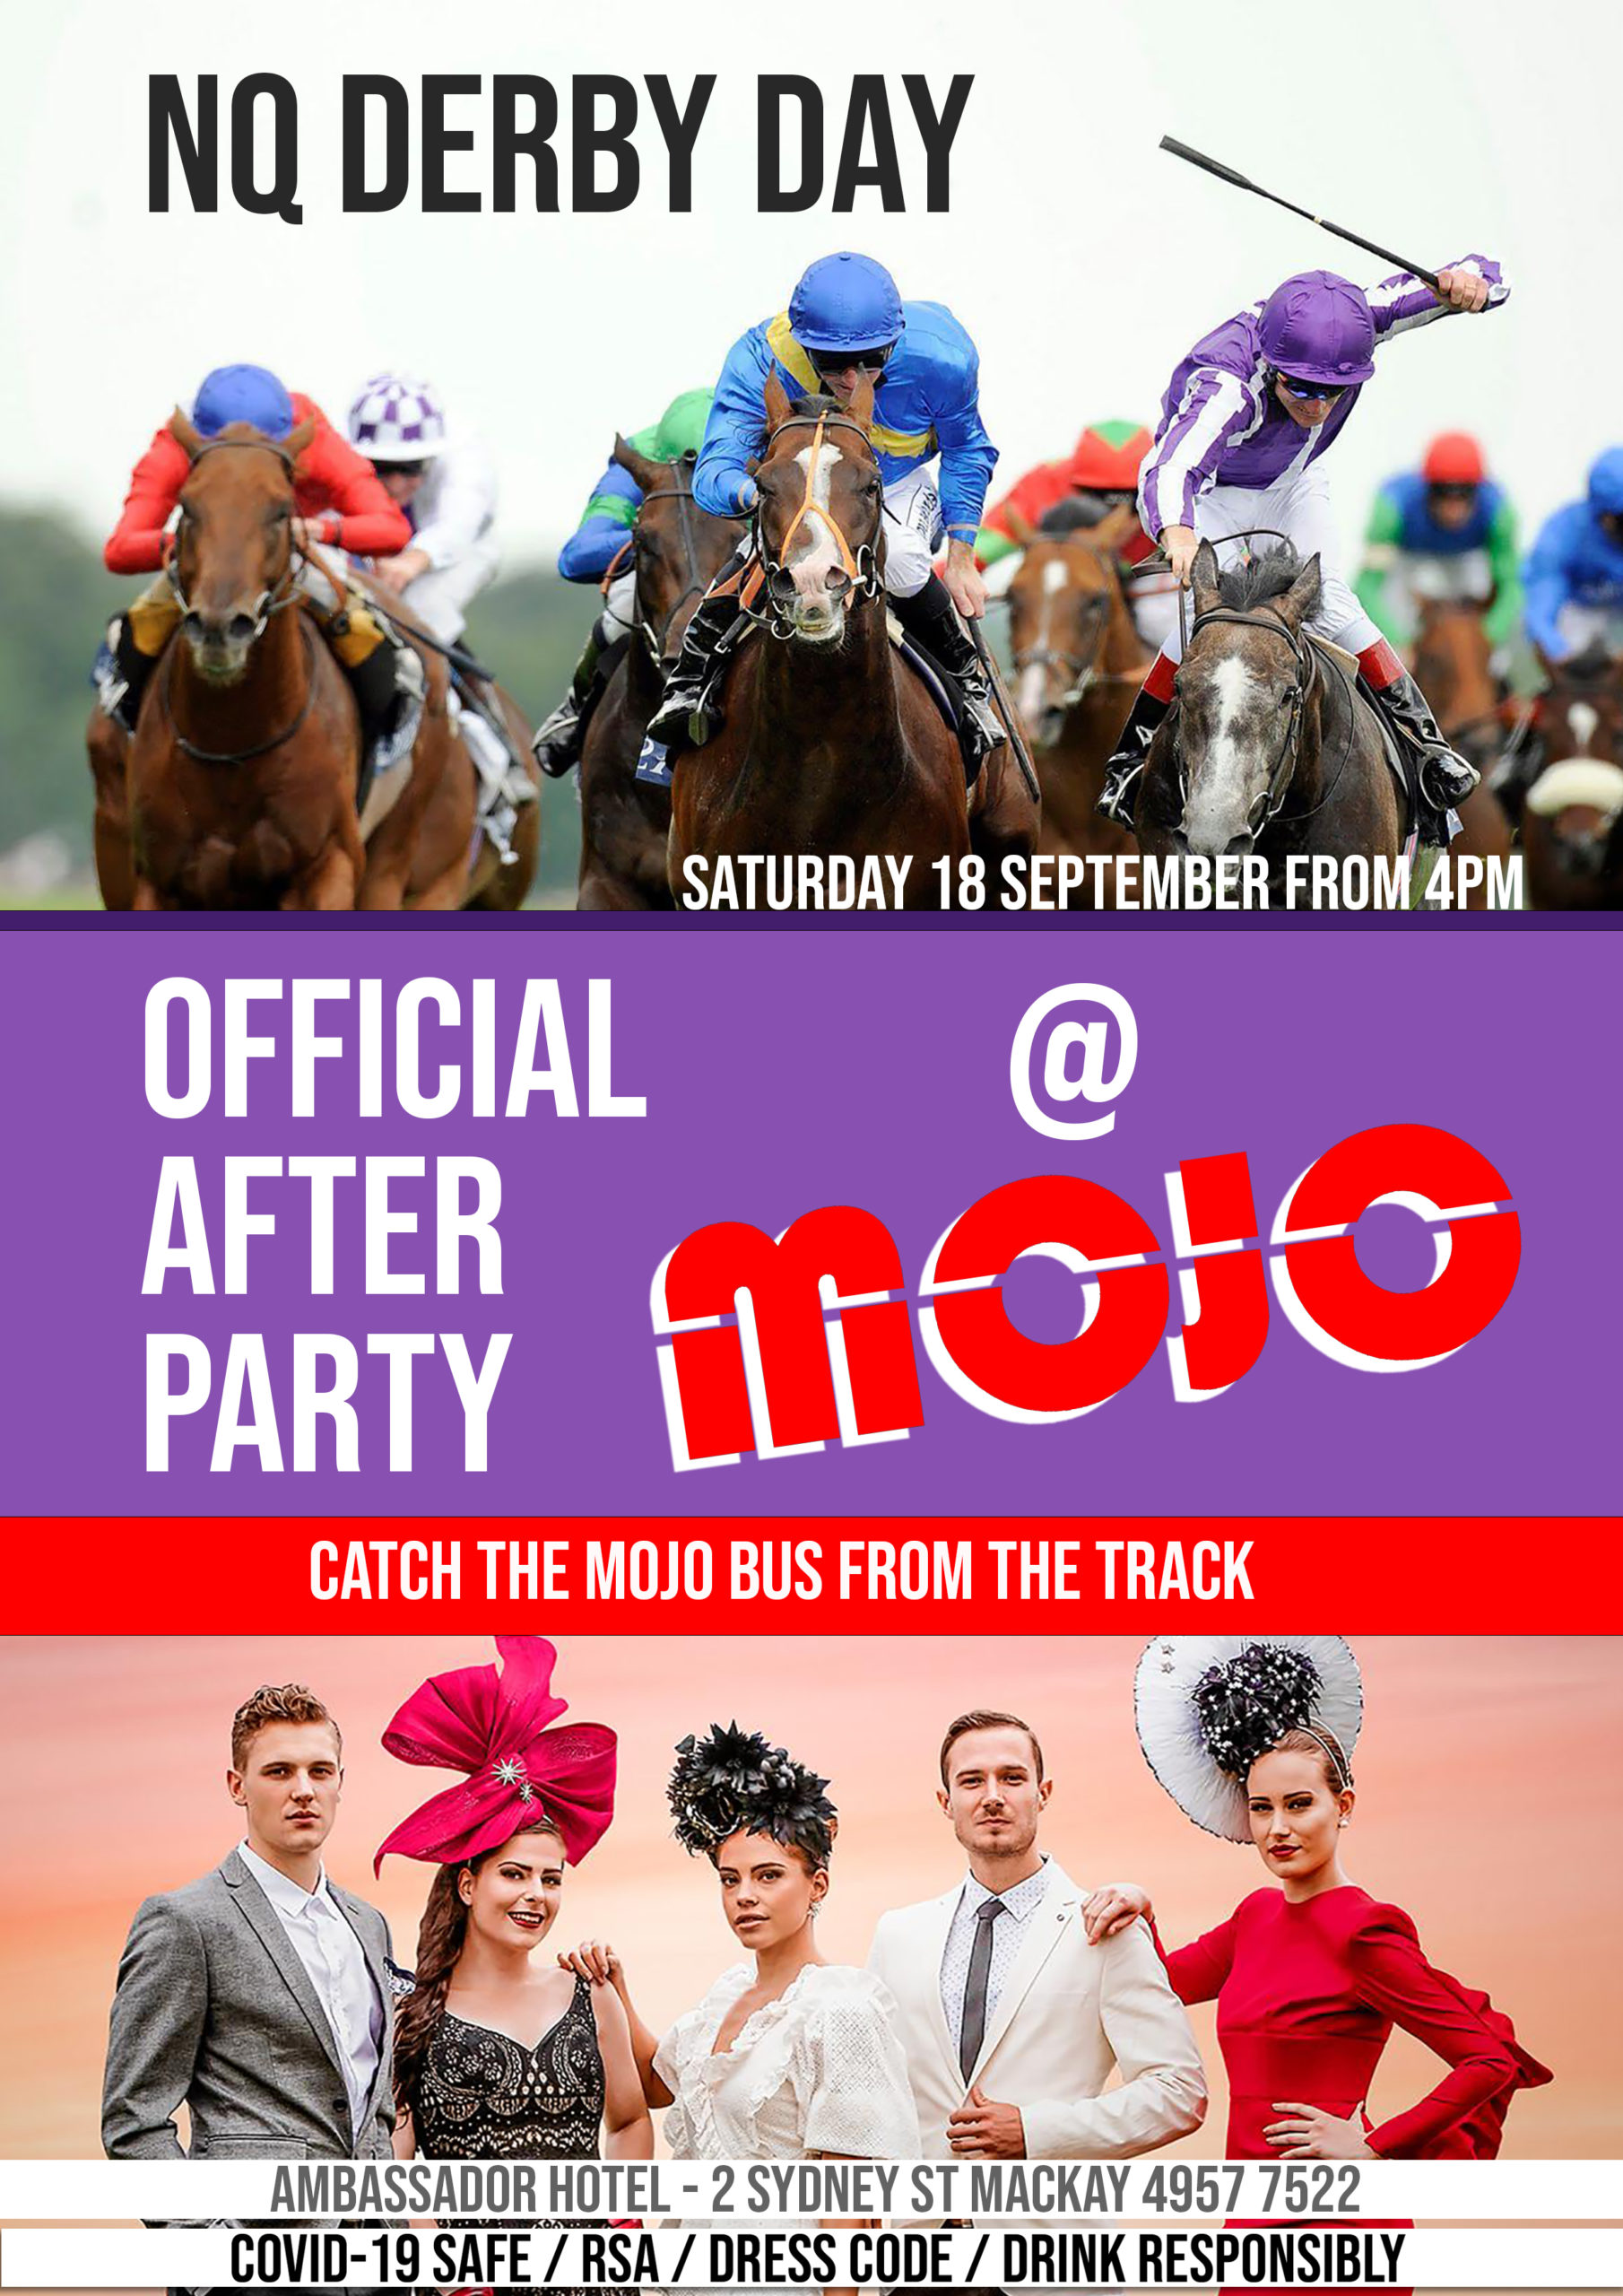 NQ DERBY DAY OFFICIAL AFTER PARTY @ MOJO